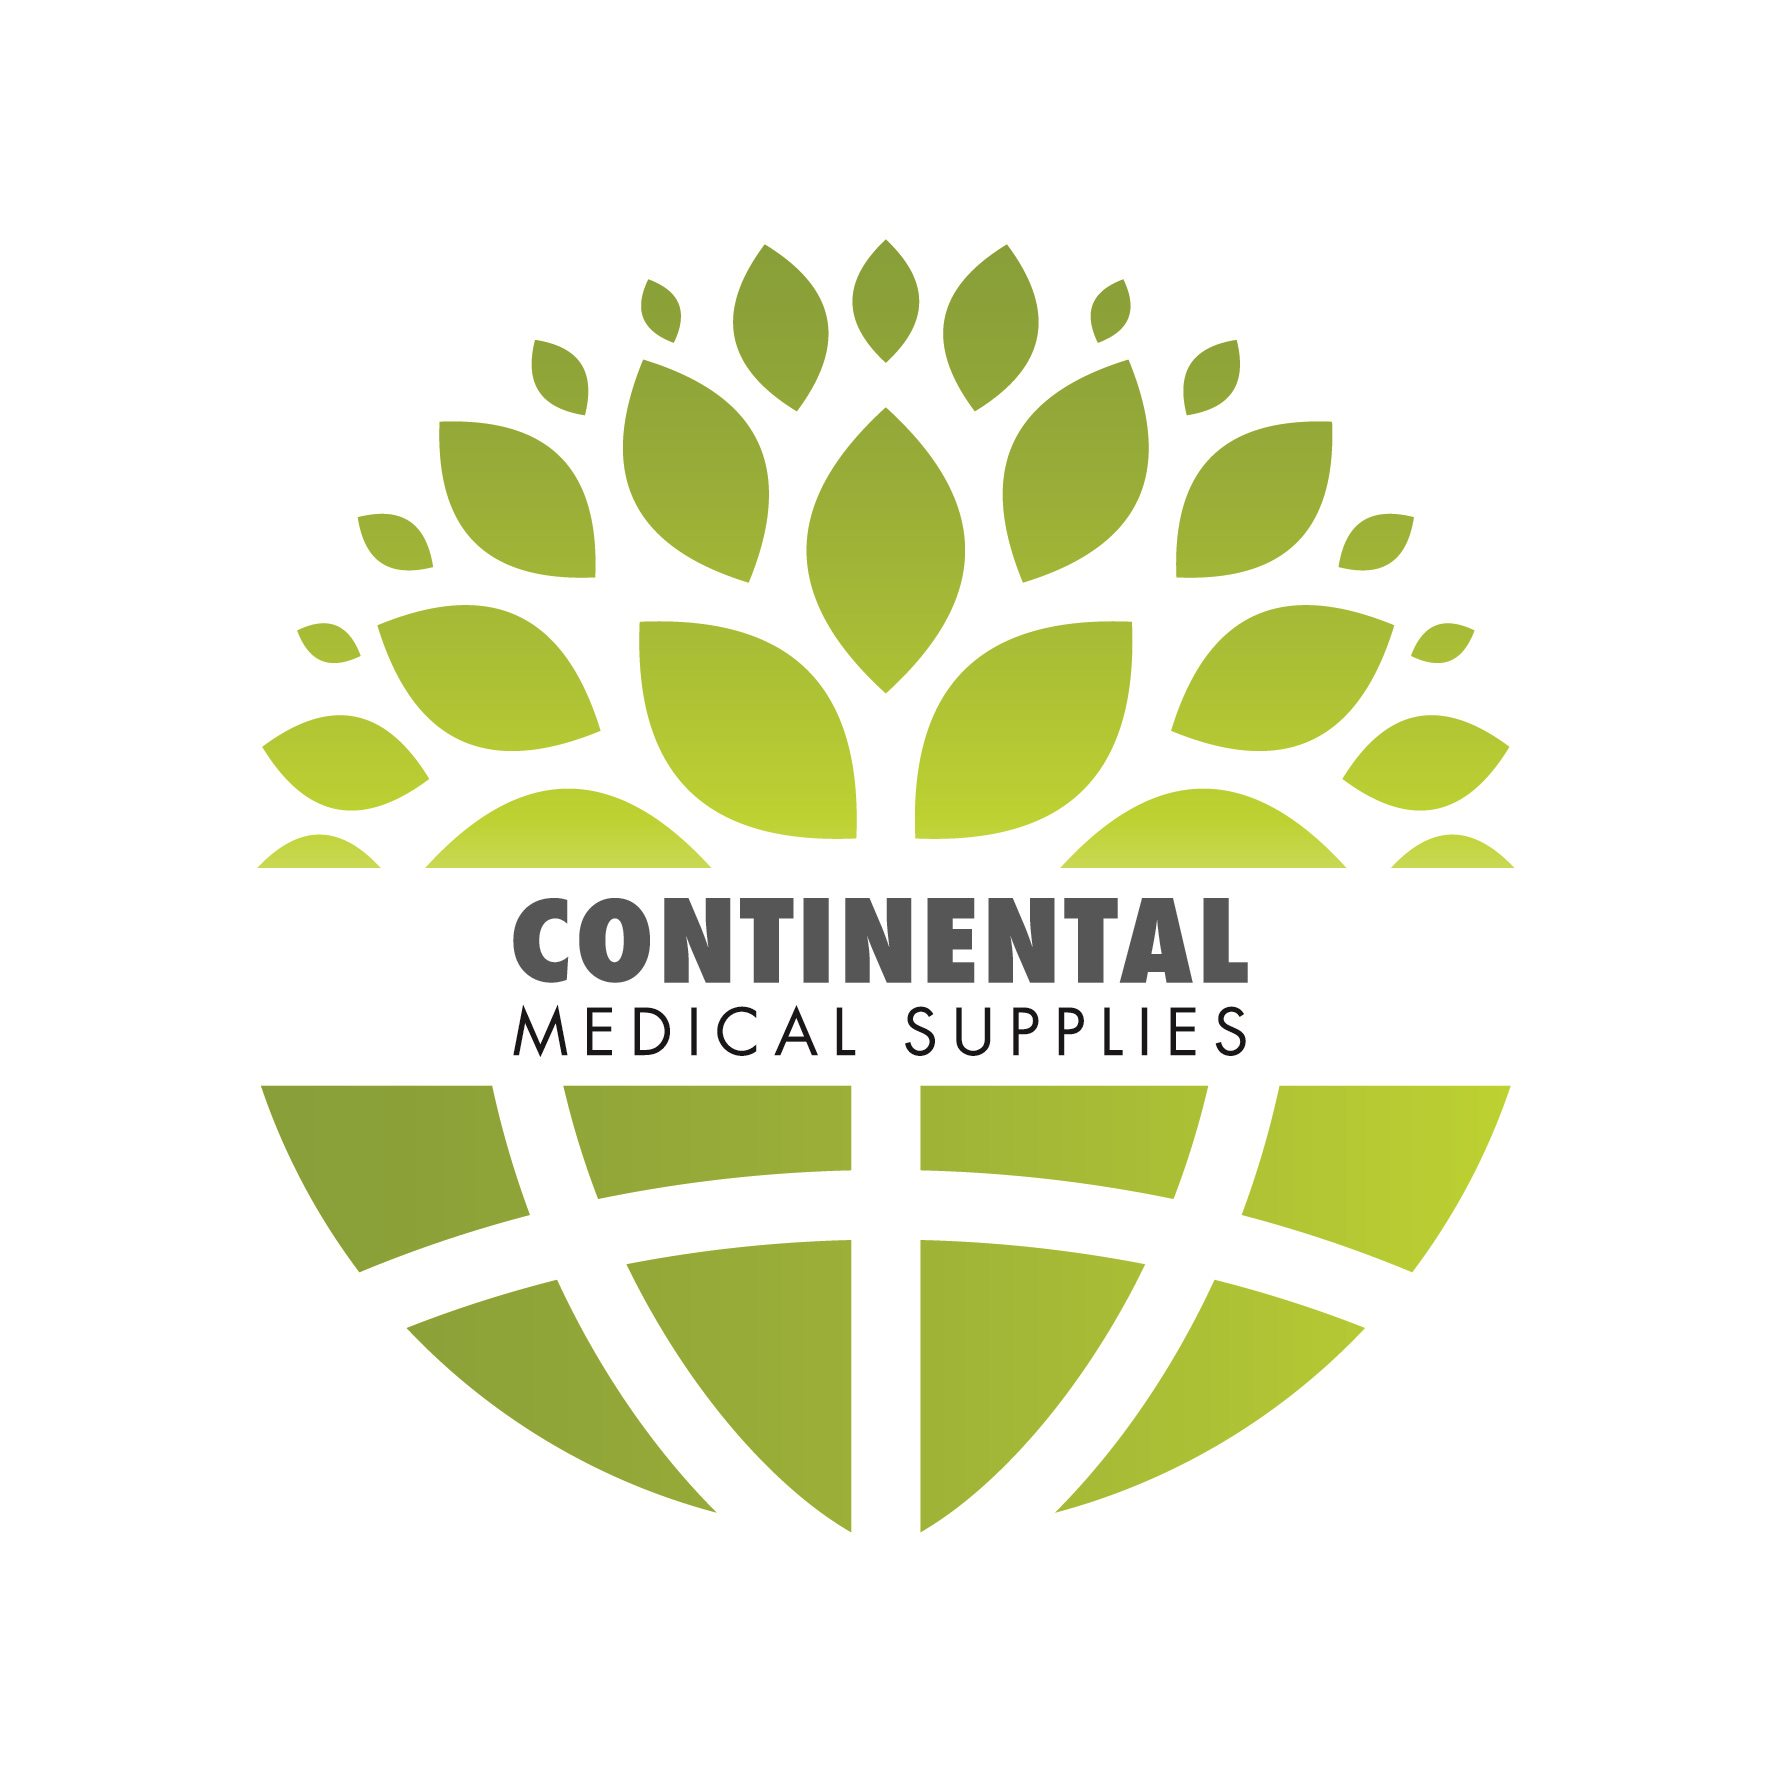 Continental Medical Supplies